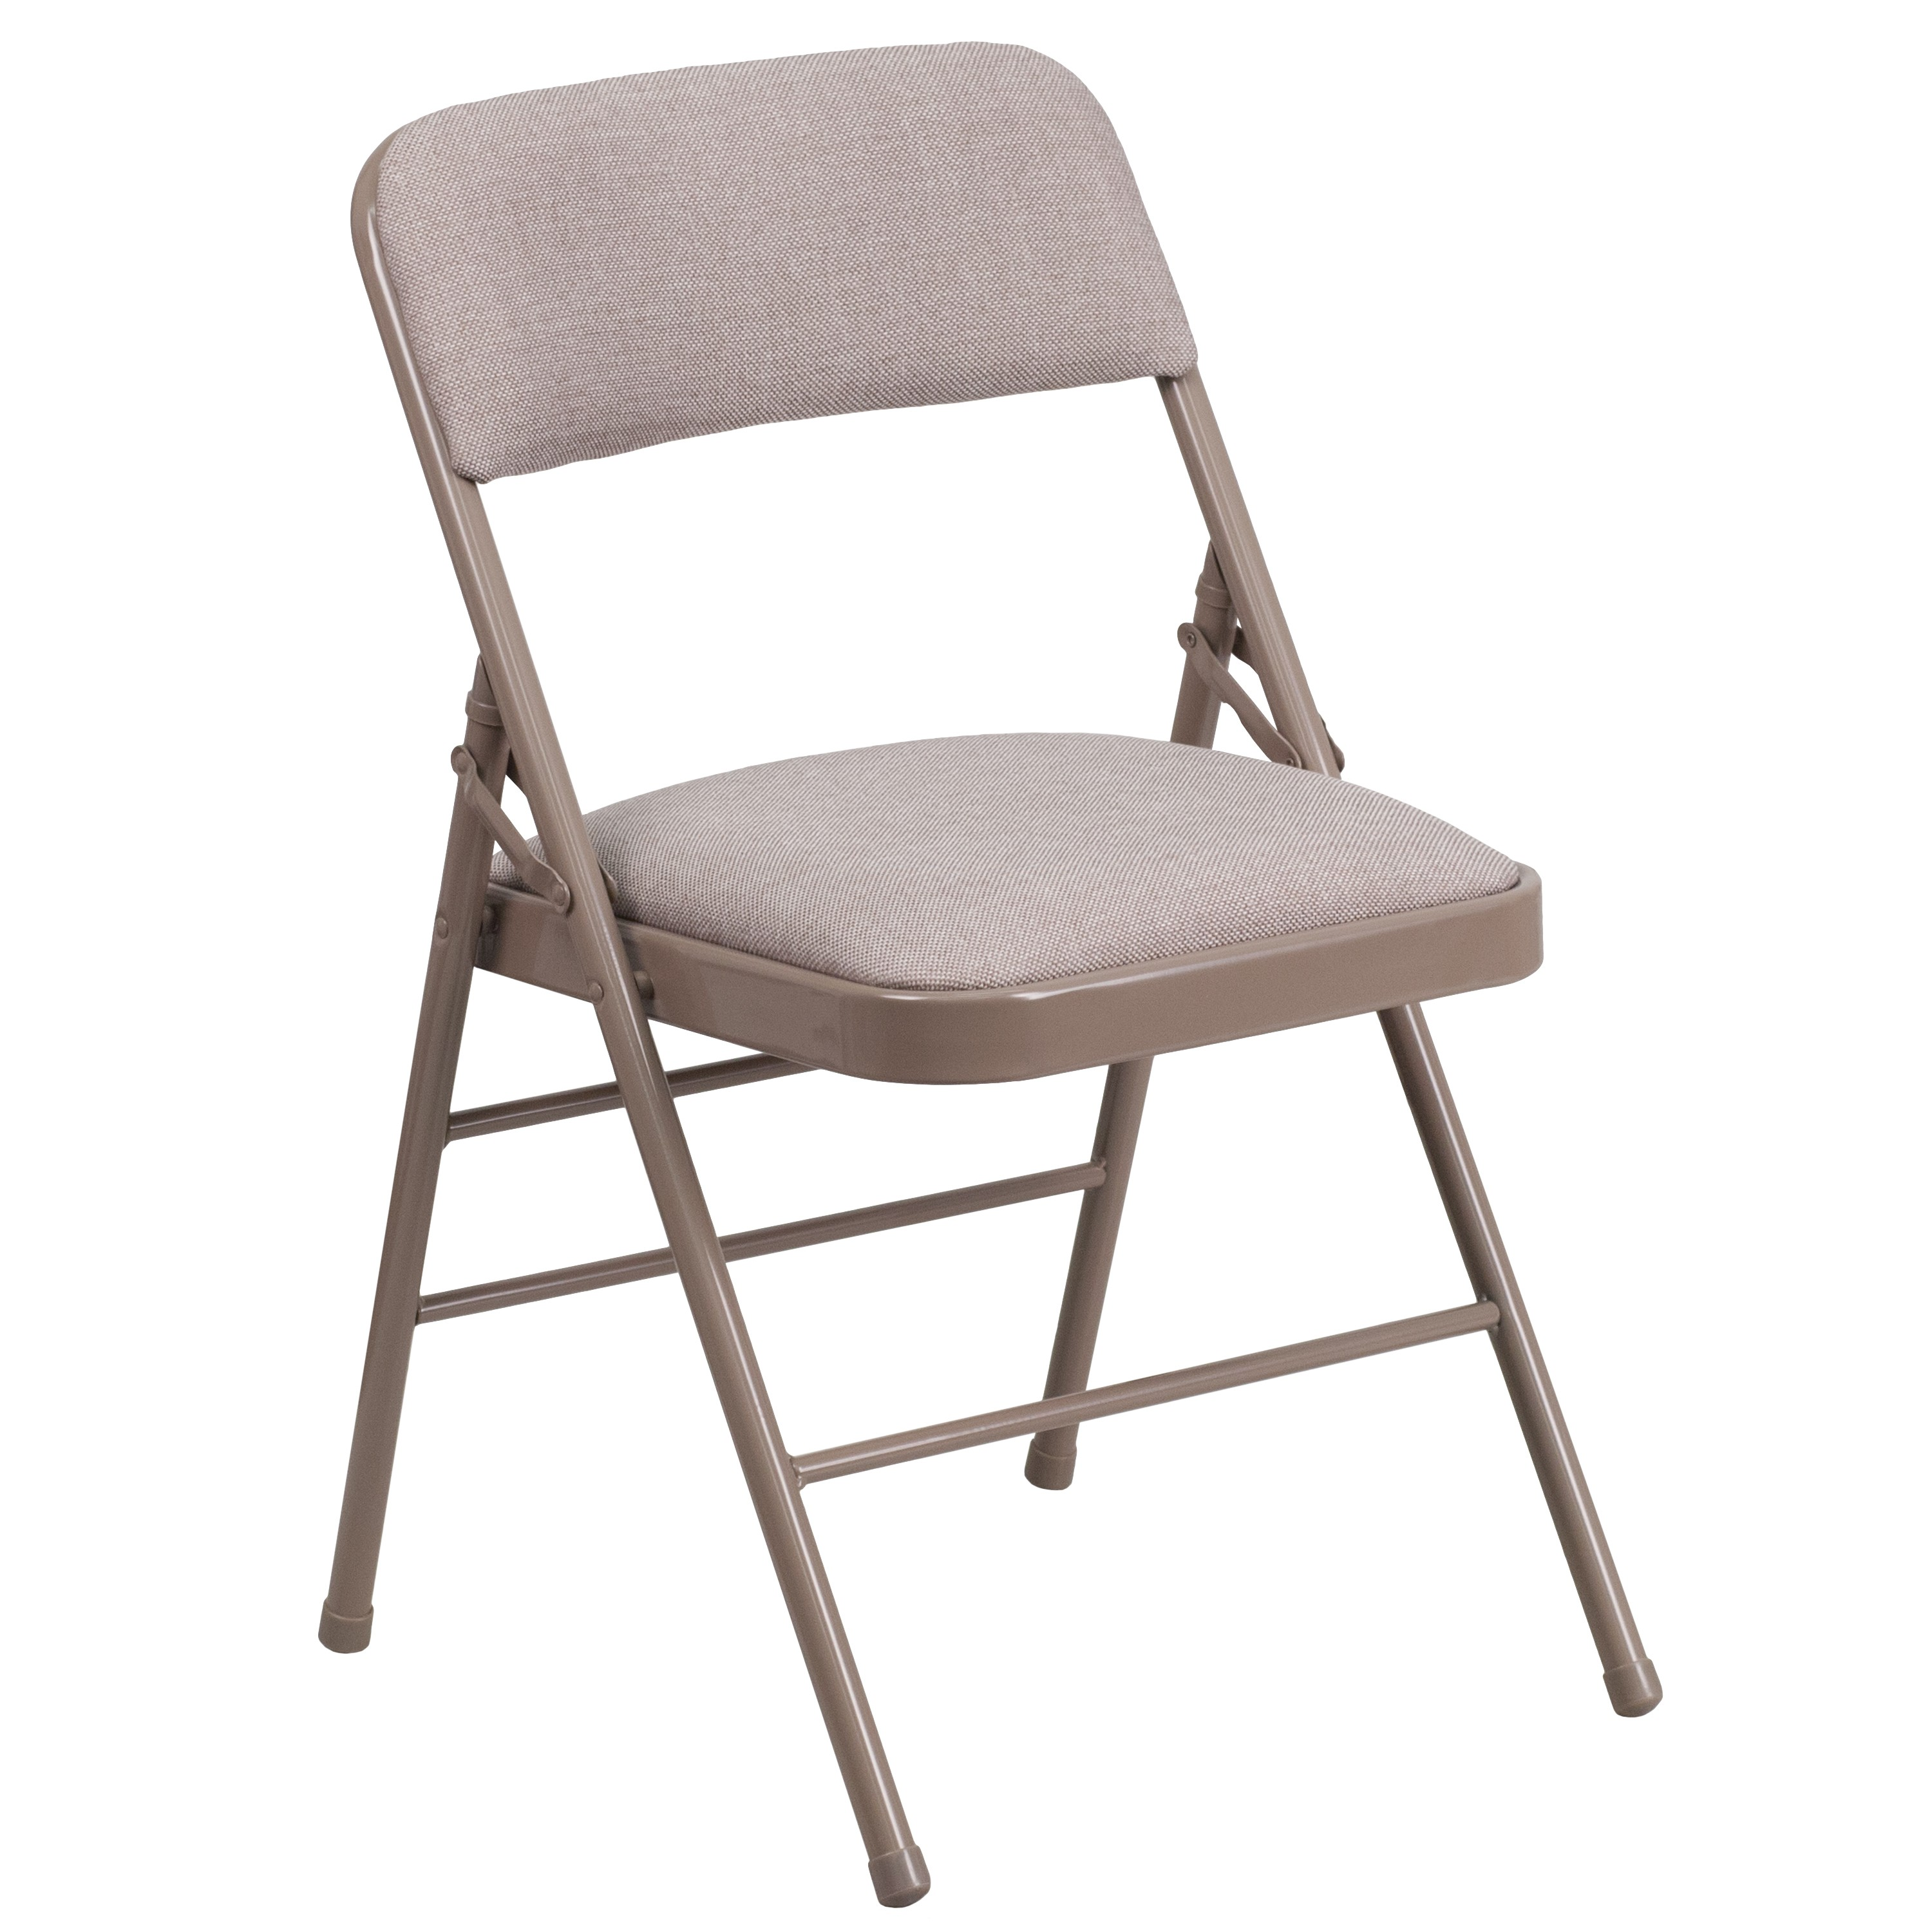 cloth padded folding chairs toddler potty chair with tray beautiful hercules series rtty1